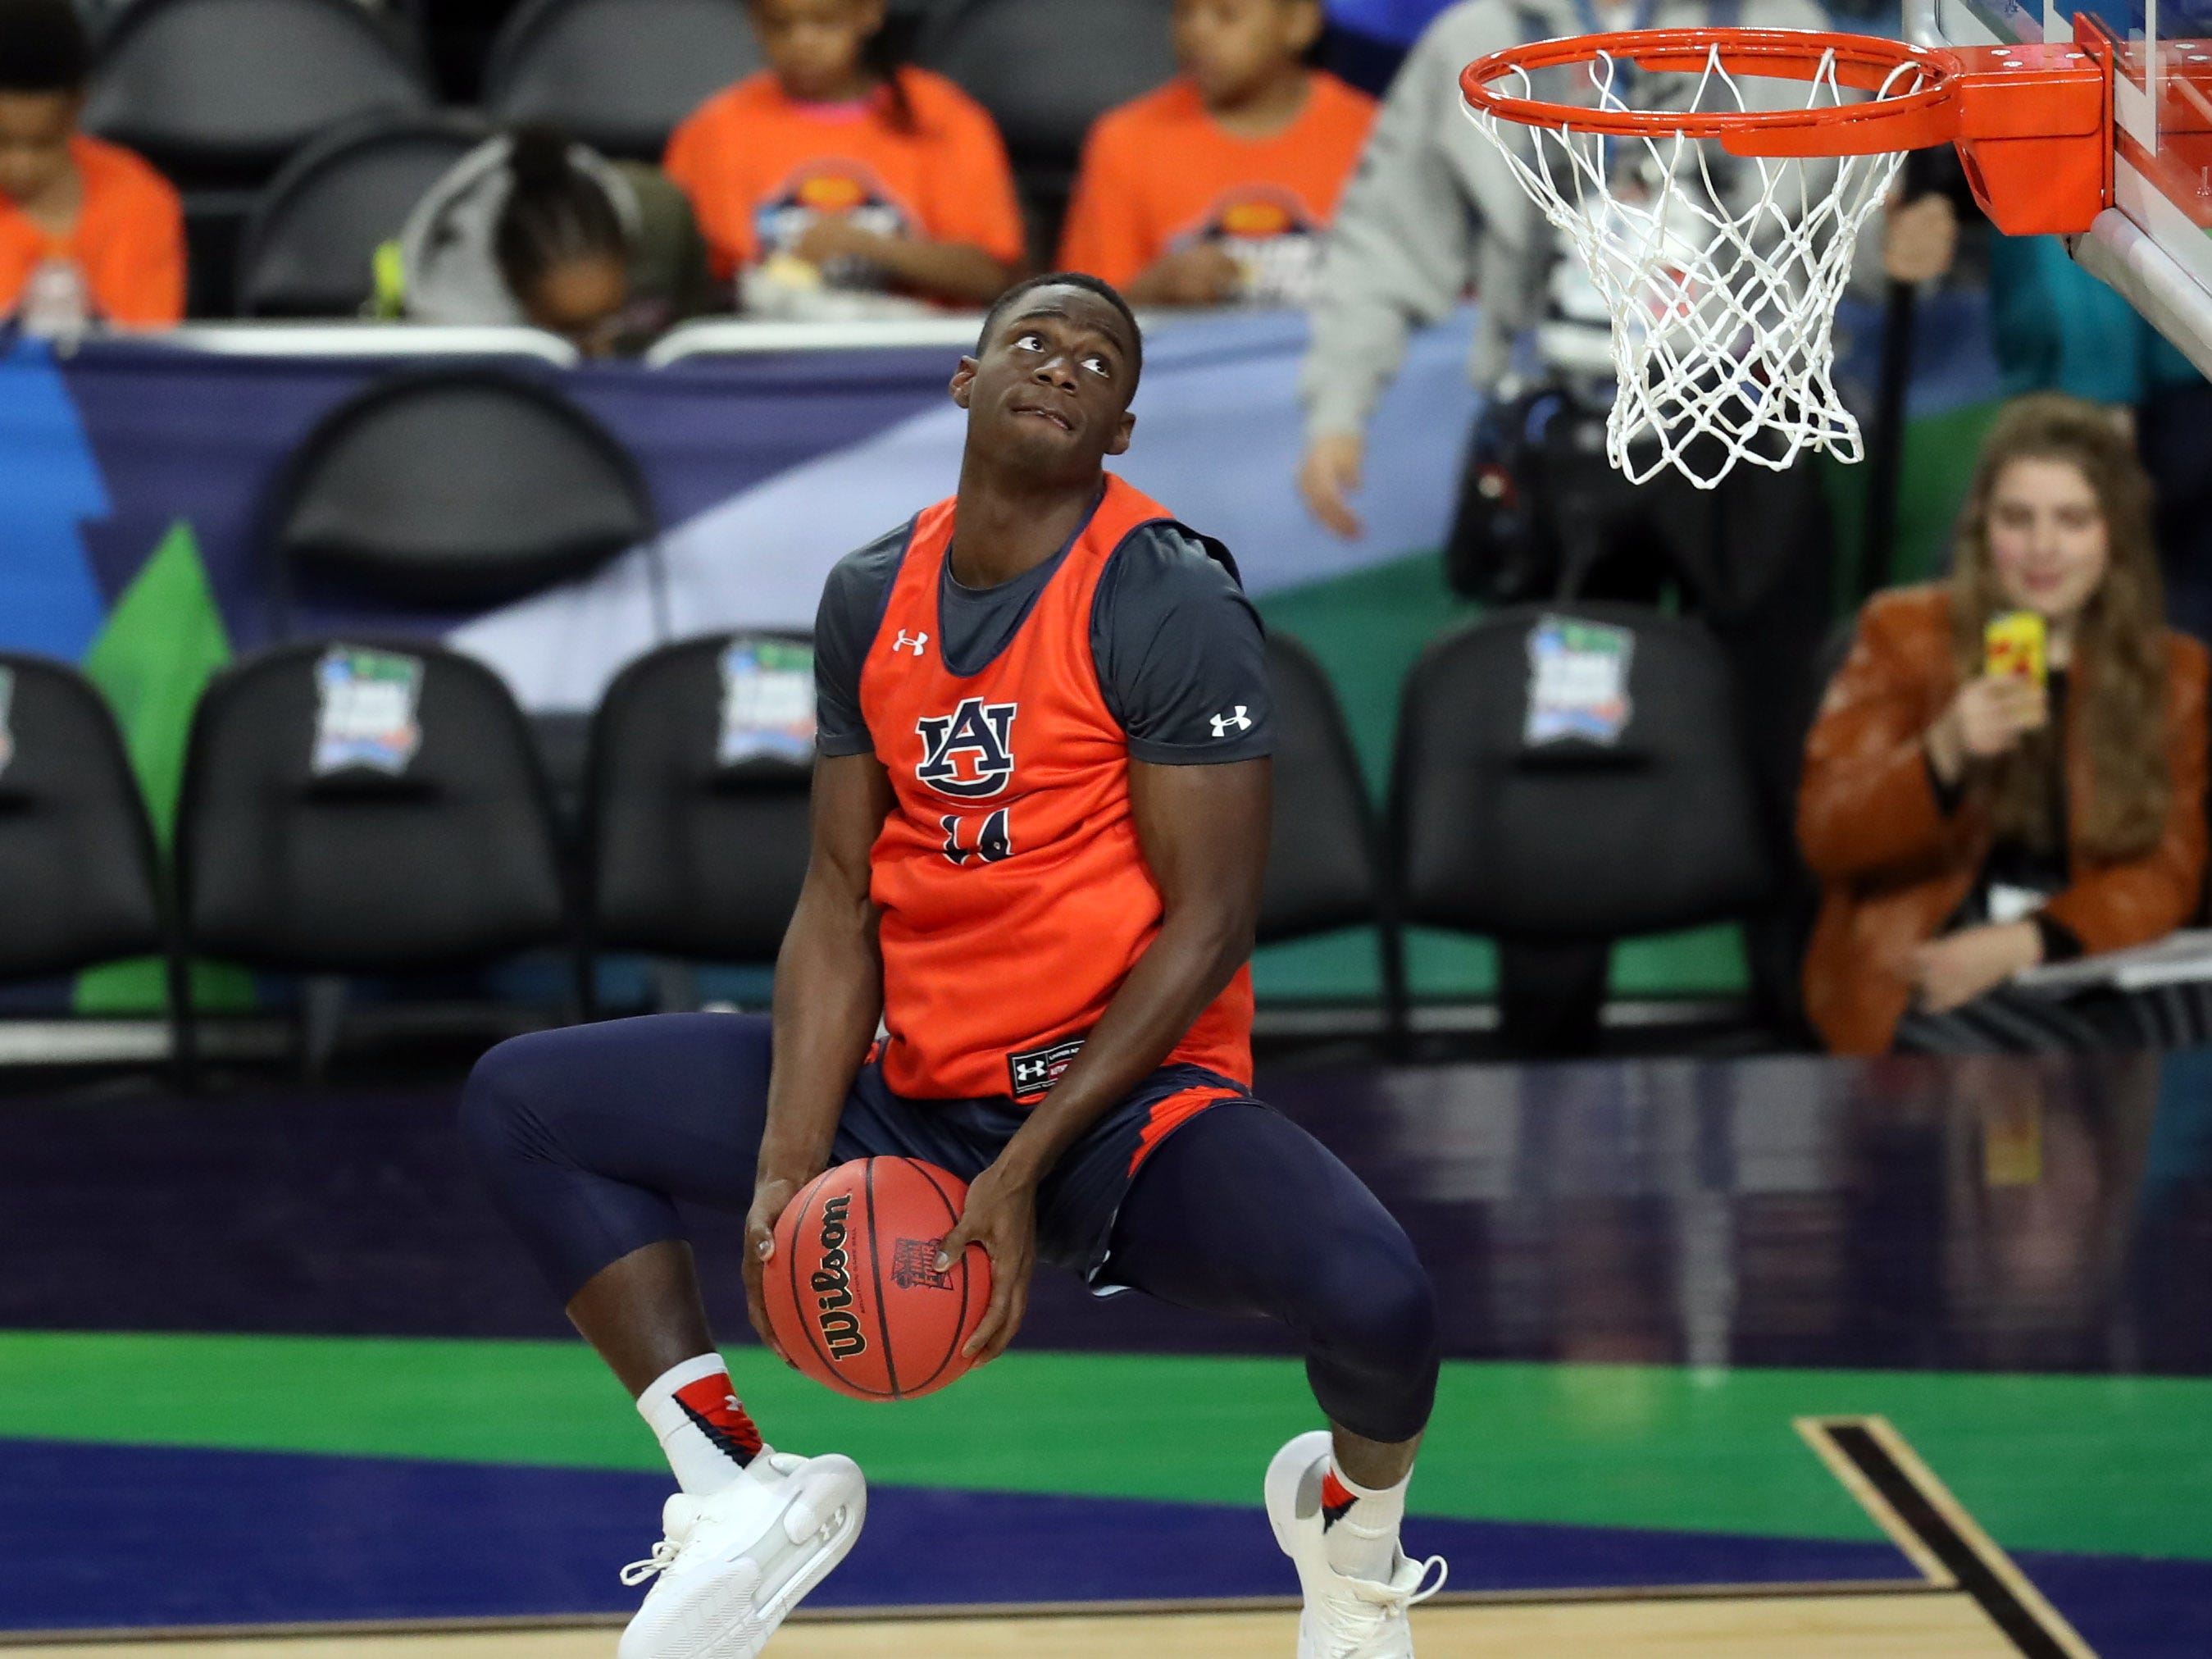 Apr 5, 2019; Minneapolis, MN, USA; Auburn Tigers guard Preston Cook (14) dunks the ball during practice for the 2019 men's Final Four at US Bank Stadium. Mandatory Credit: Brace Hemmelgarn-USA TODAY Sports